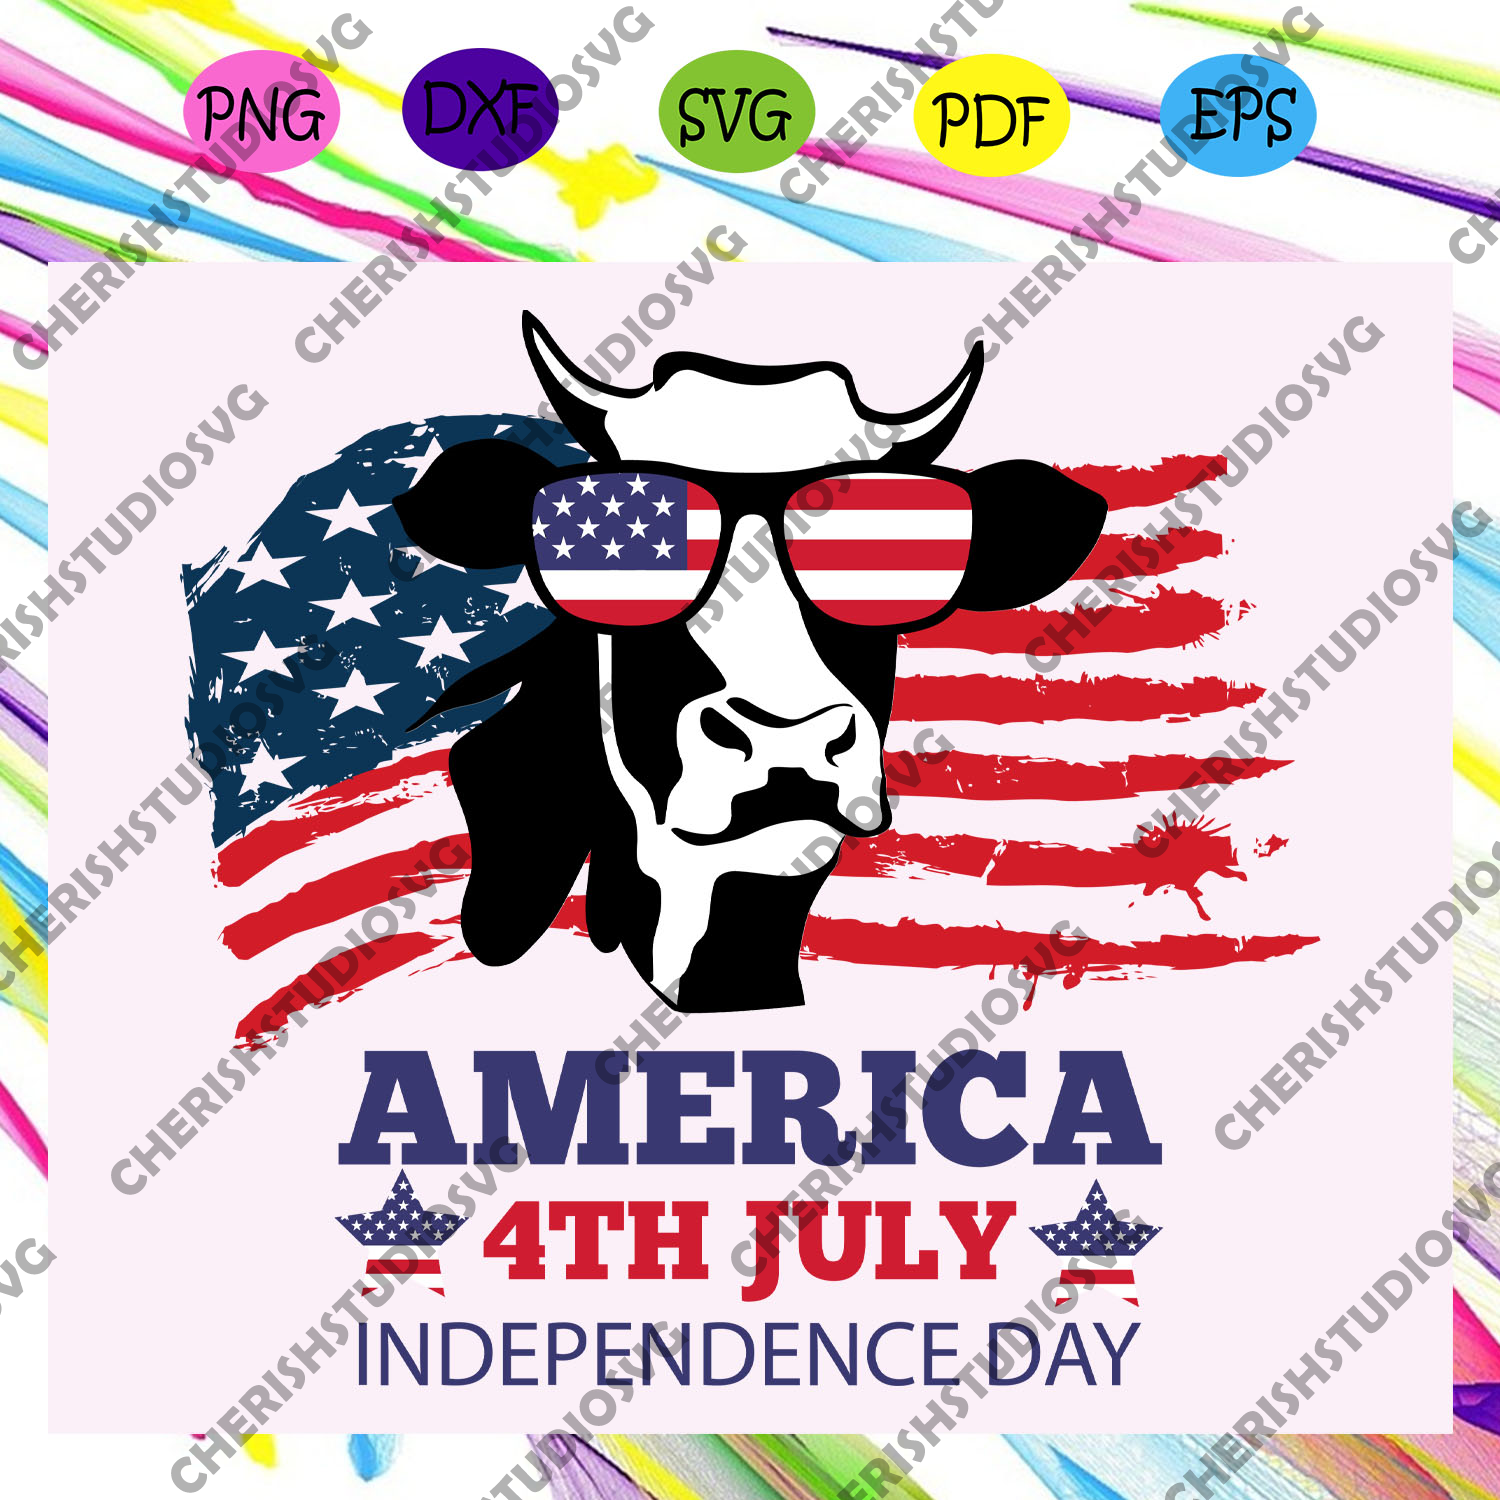 America 4th july independence day, heifer gift, heifer lover,independence day svg, happy 4th of july, patriotic svg,independence day gift,For Silhouette, Files For Cricut, SVG, DXF, EPS, PNG Instant Download